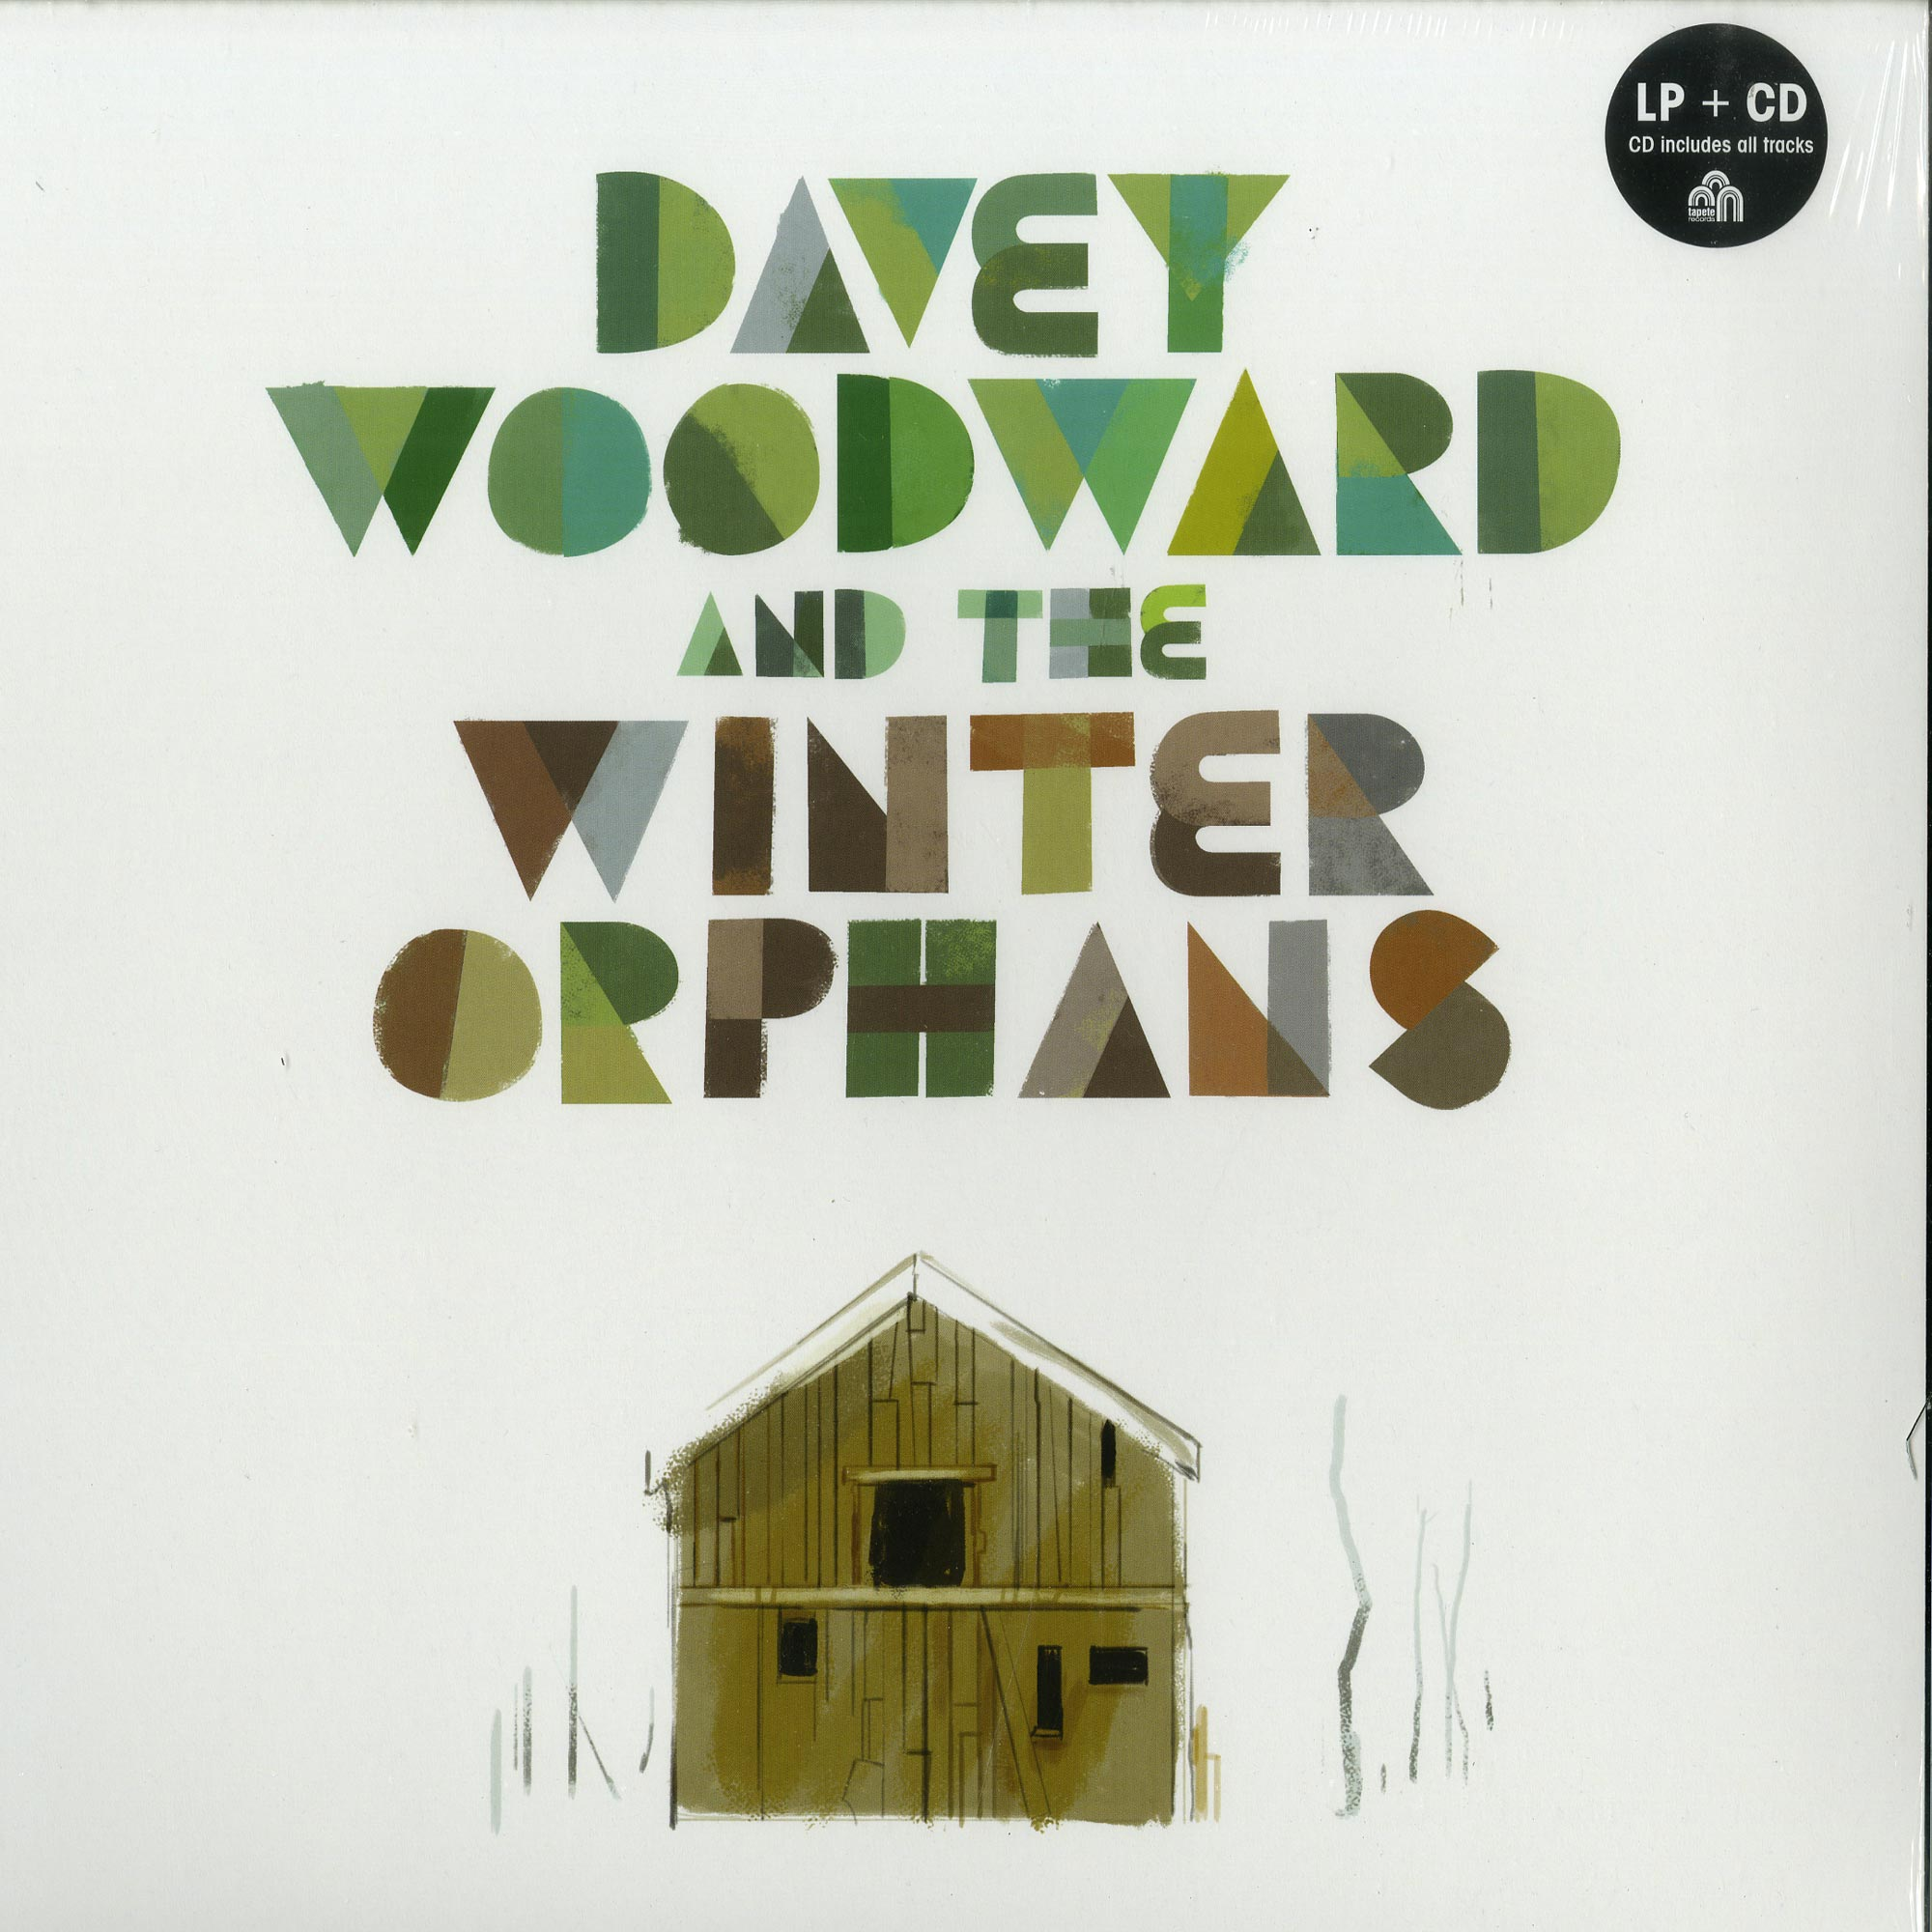 Davey Woodward And The Winter Orphans - DAVEY WOODWARD AND THE WINTER ORPHANS